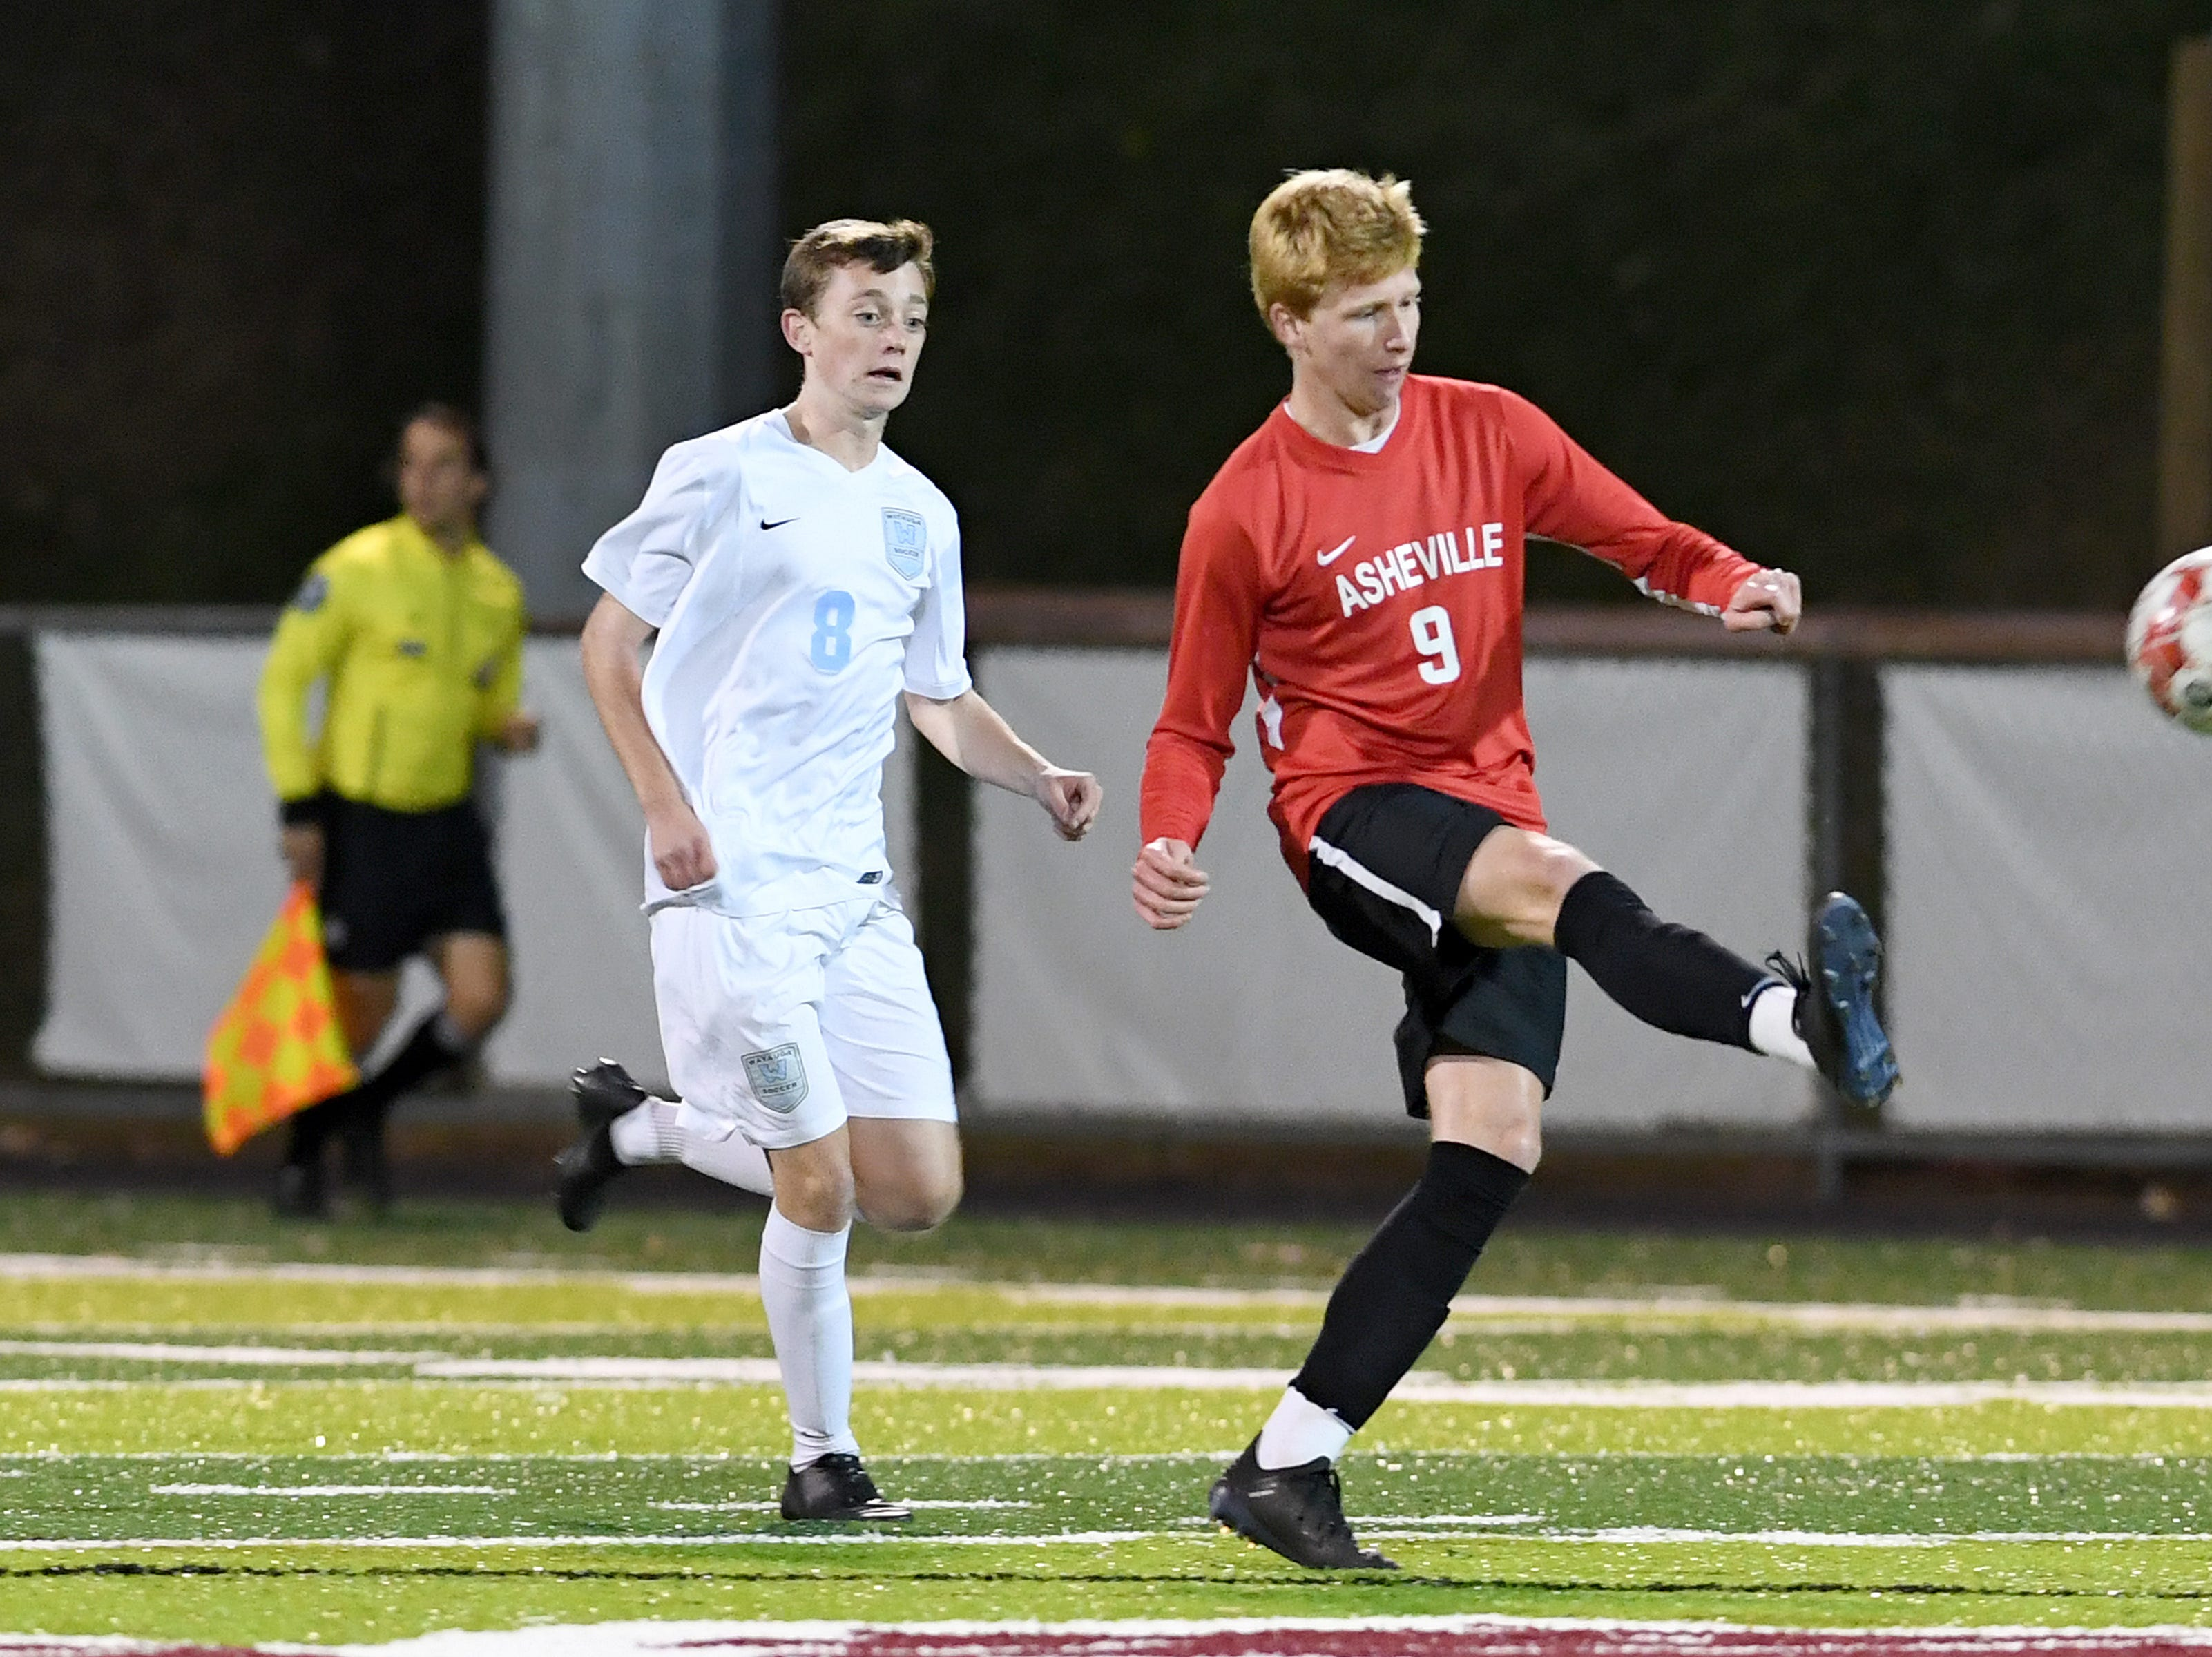 Asheville's Michael Wilkerson reaches the ball ahead of Watauga's Jake Ganley during their playoff game at Asheville High School on Nov. 8, 2018. The Cougars defeated the Pioneers 1-0 to advance.